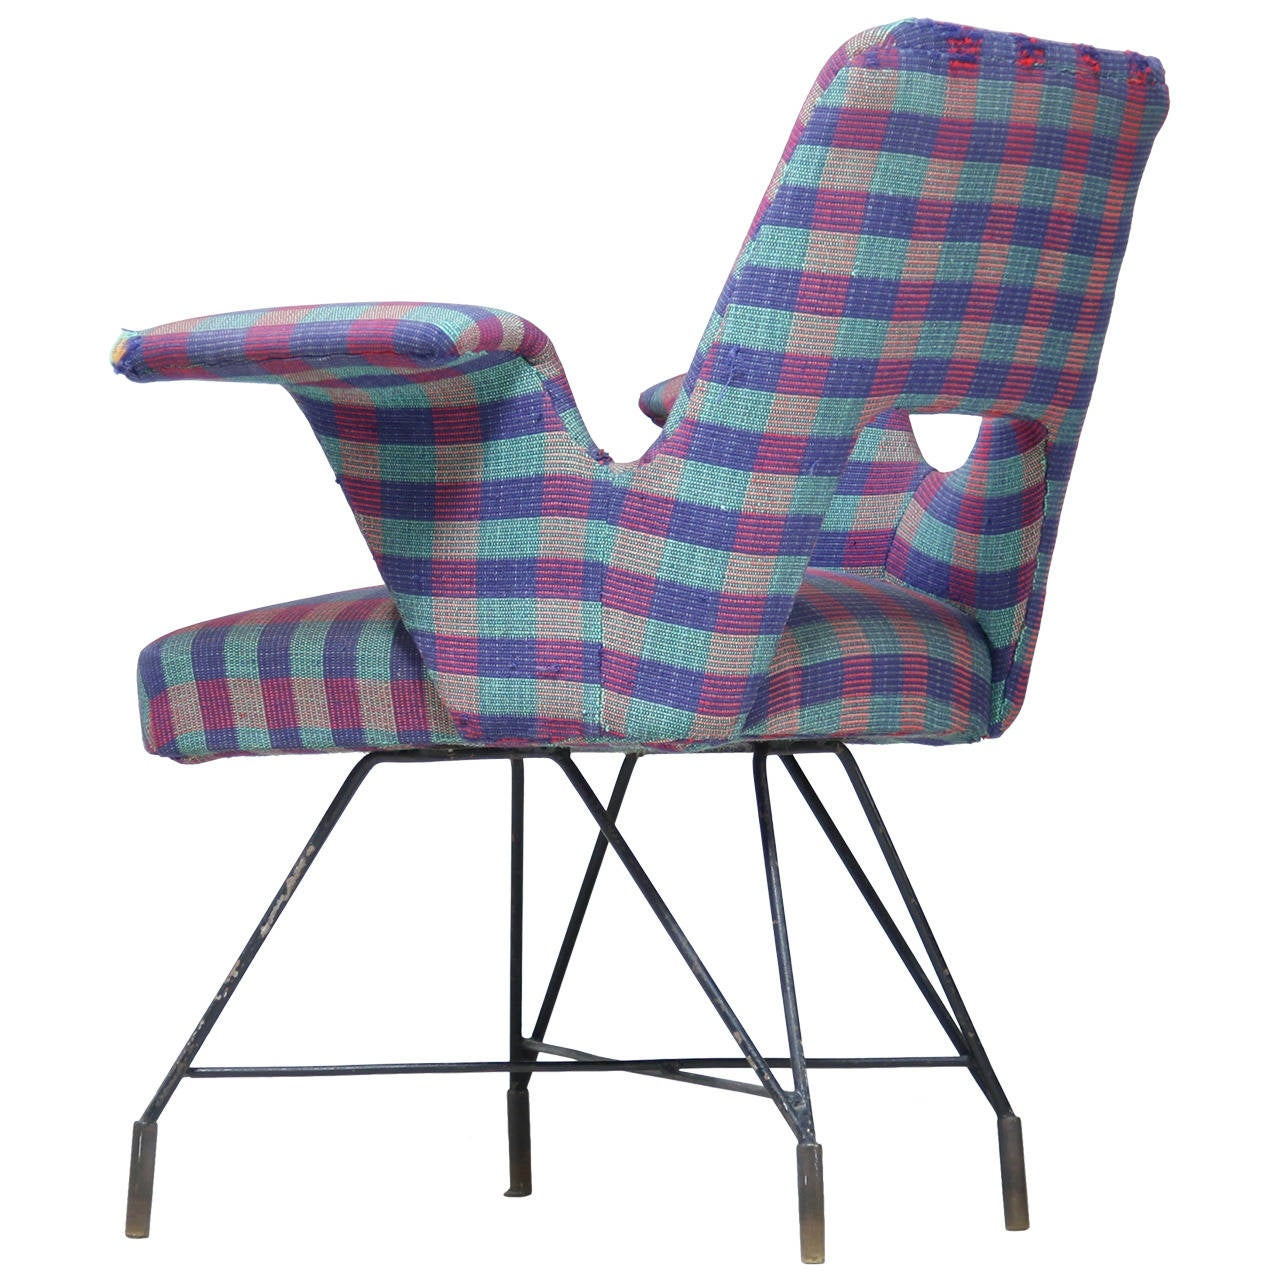 BBPR Curved Arm Lounge Chair with Original Fabric at 1stdibs